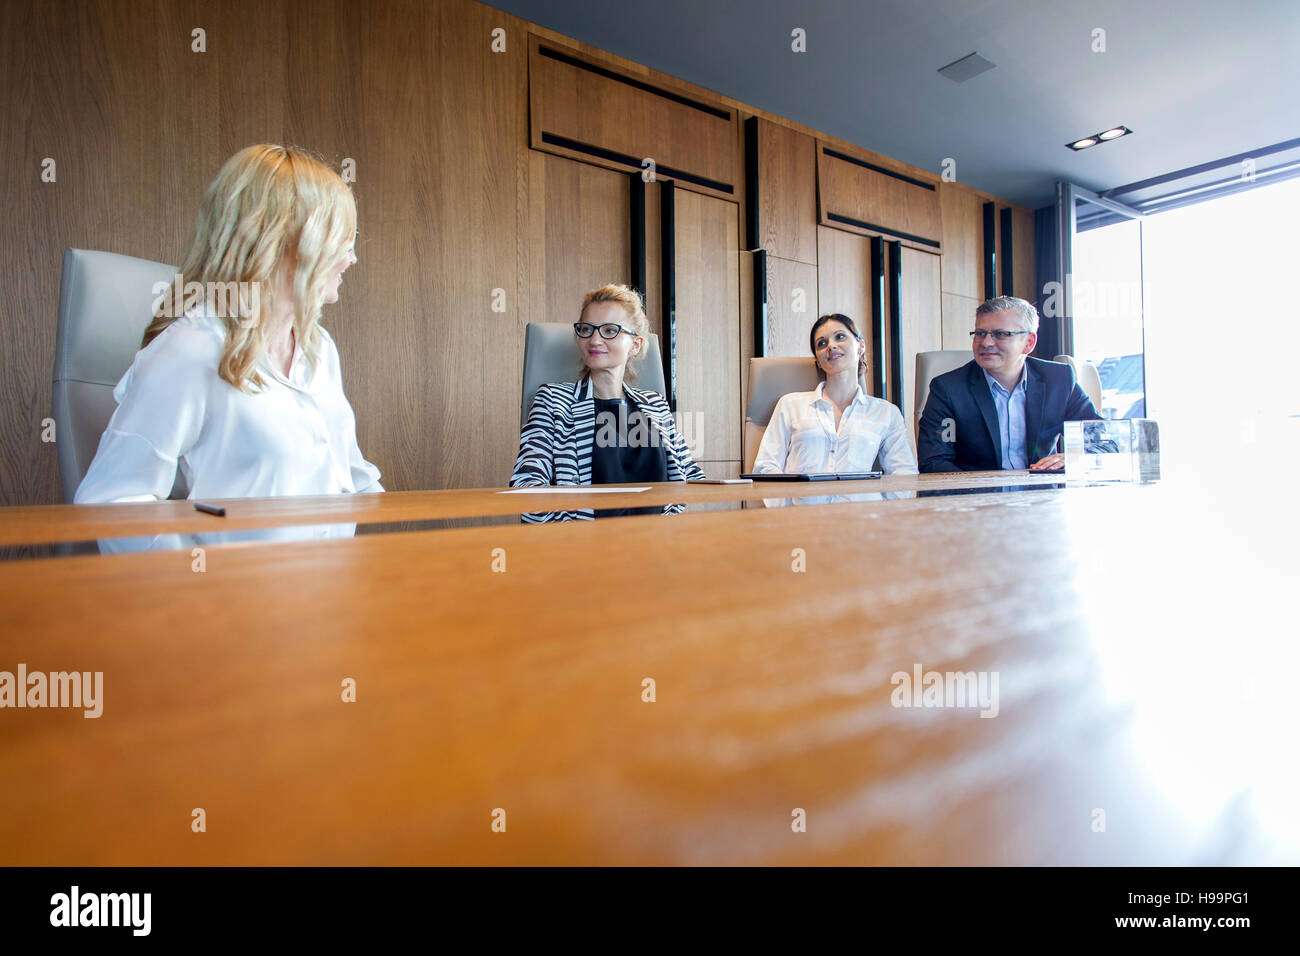 Business people having a meeting in board room - Stock Image